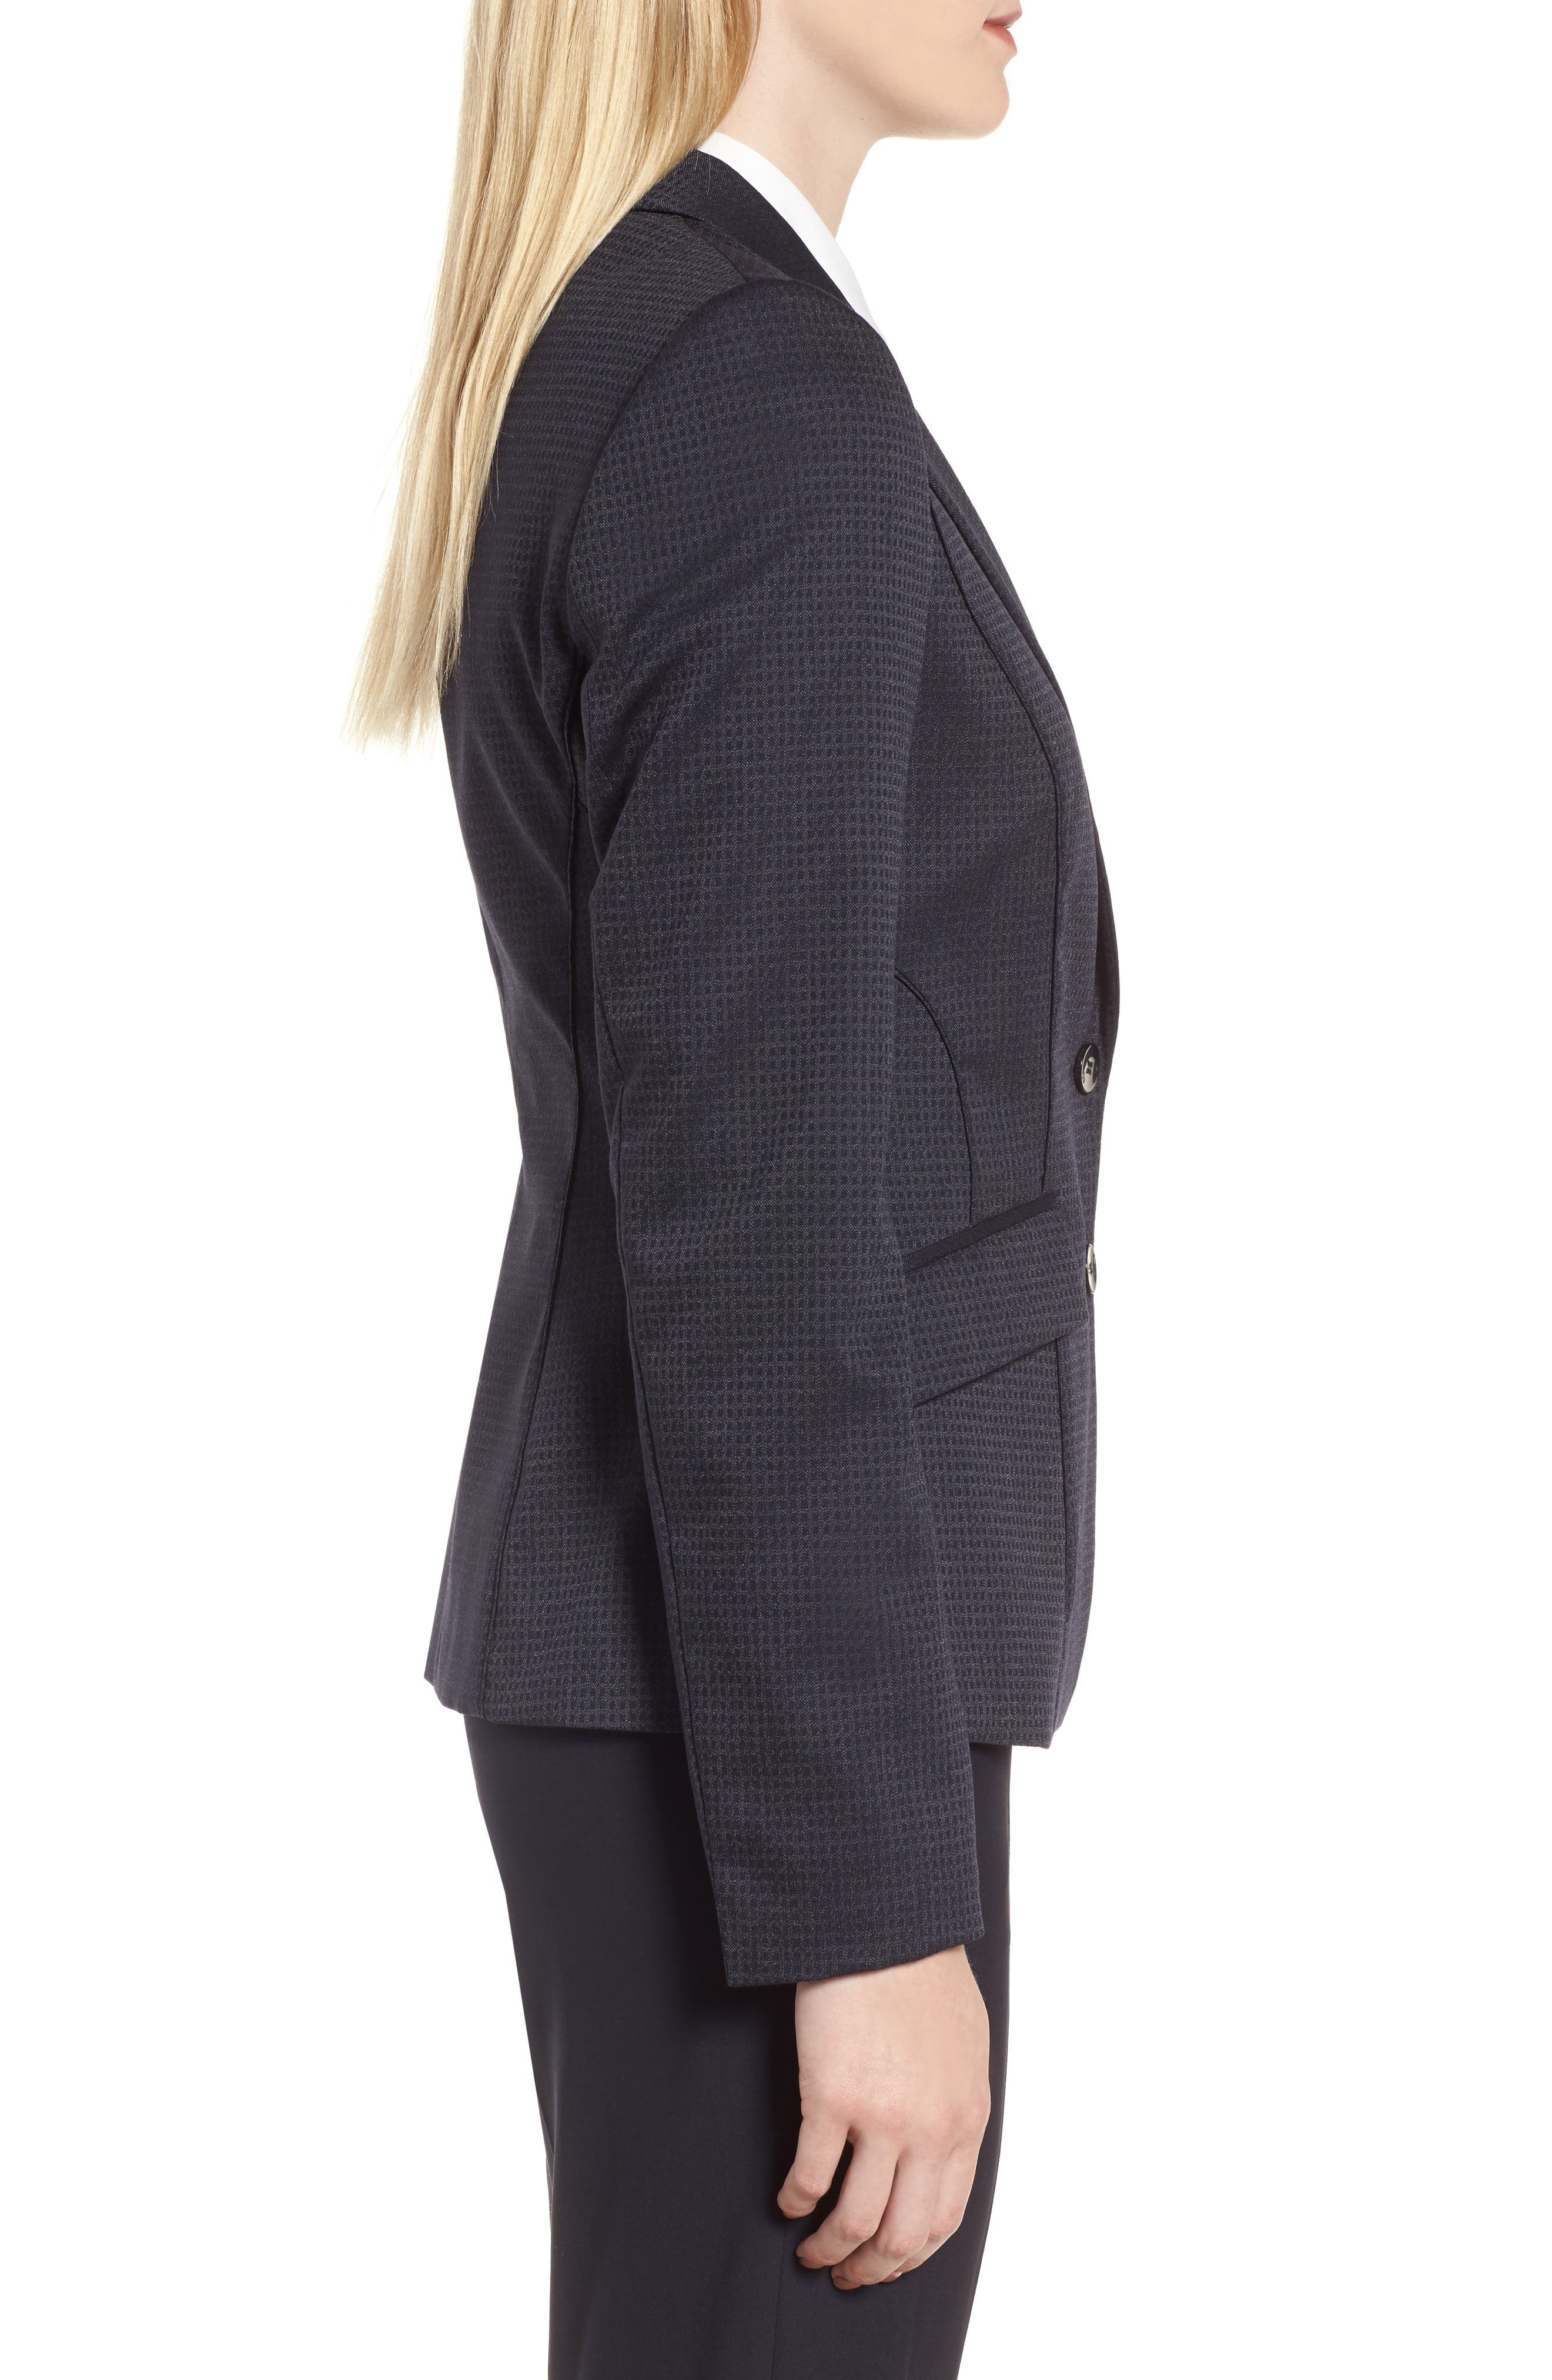 Jukani Check Wool Blend Suit Jacket,                             Alternate thumbnail 3, color,                             020